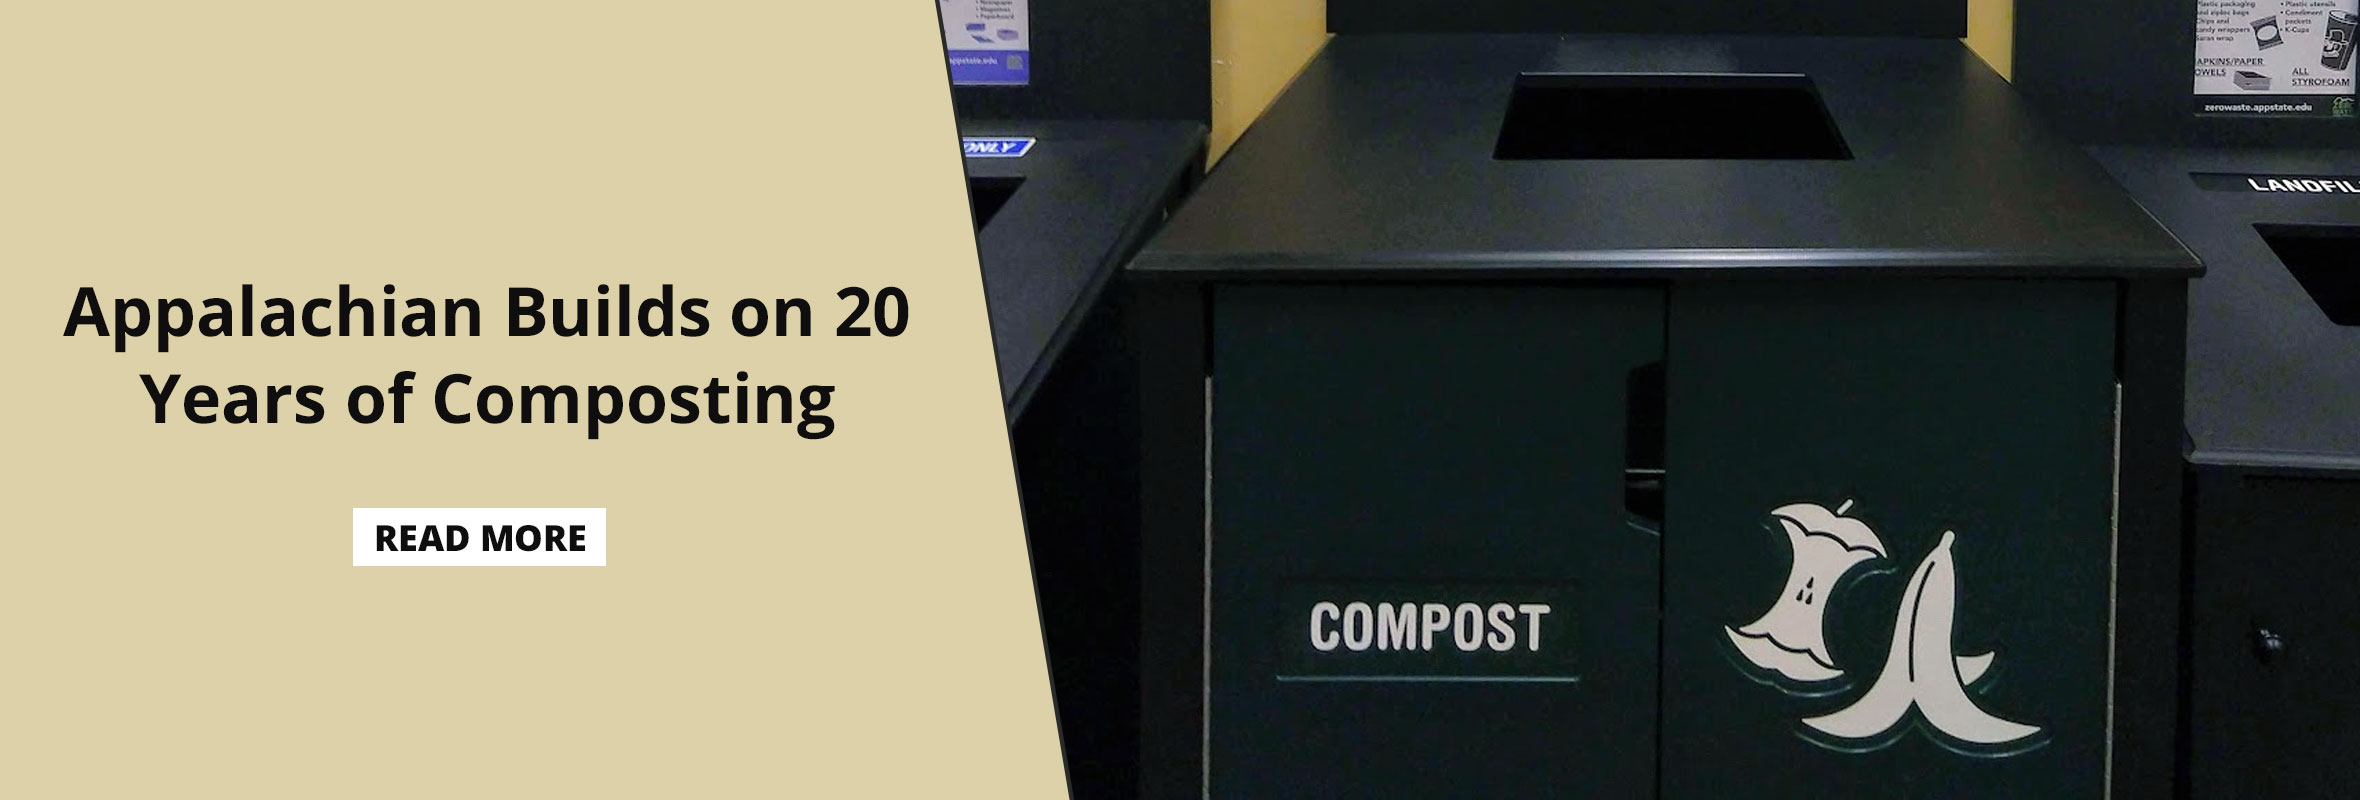 Appalachian Builds on 20 Years of Composting on Campus with Dining Expansion